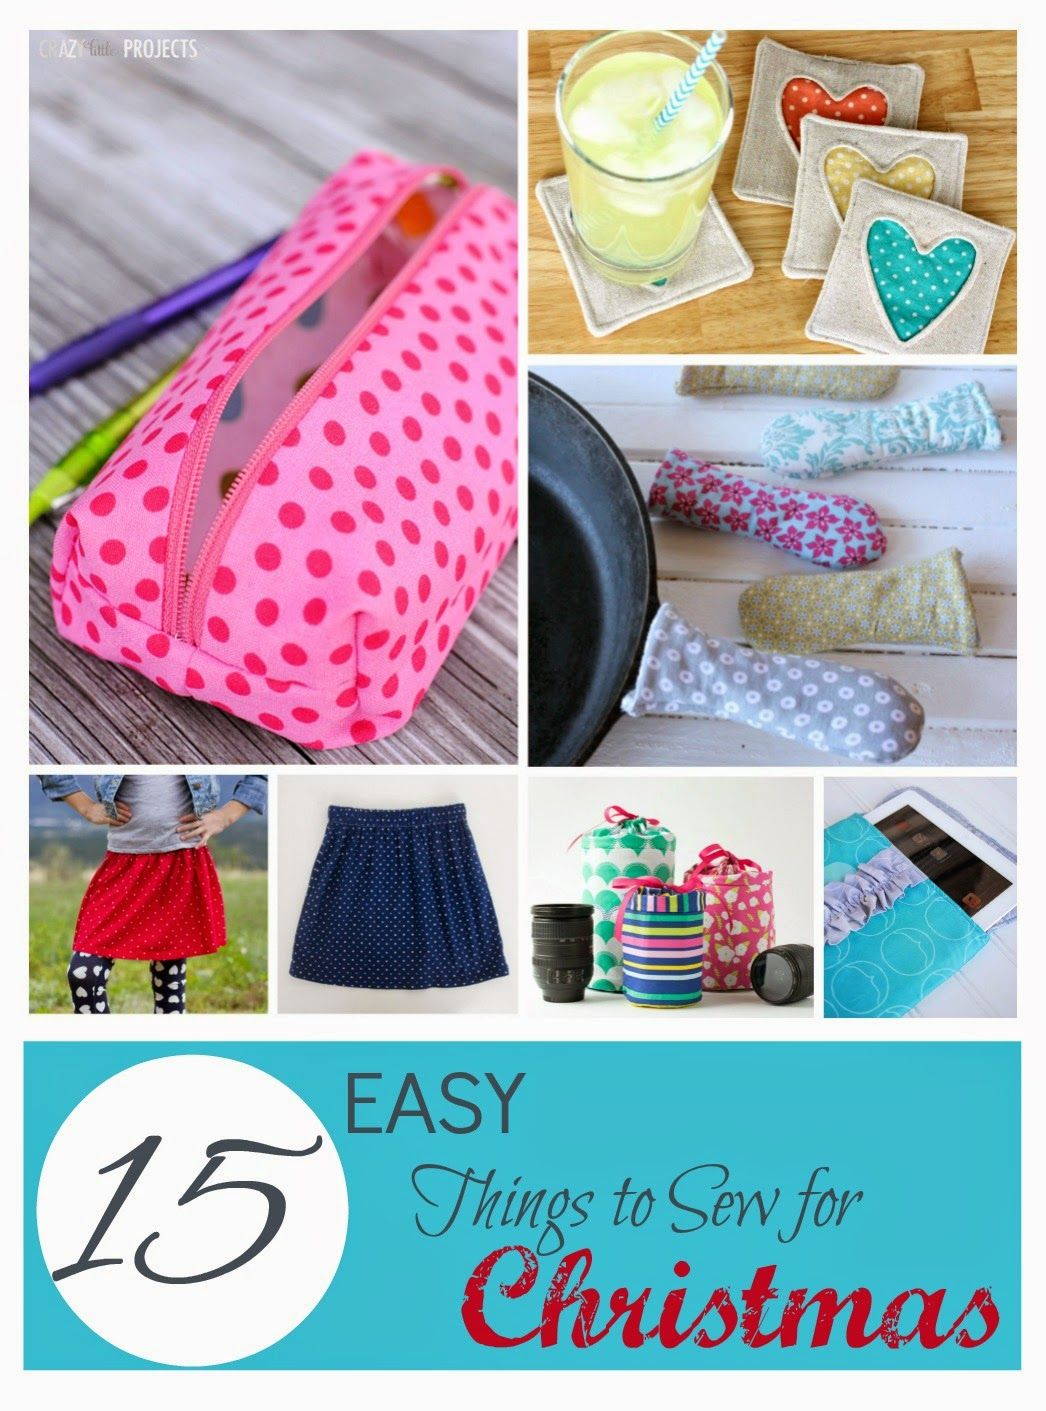 Southern Fabric 15 Easy Things To Sew For Christmas Presents Fabric Scraps Easy Sewing Projects Easy Sewing